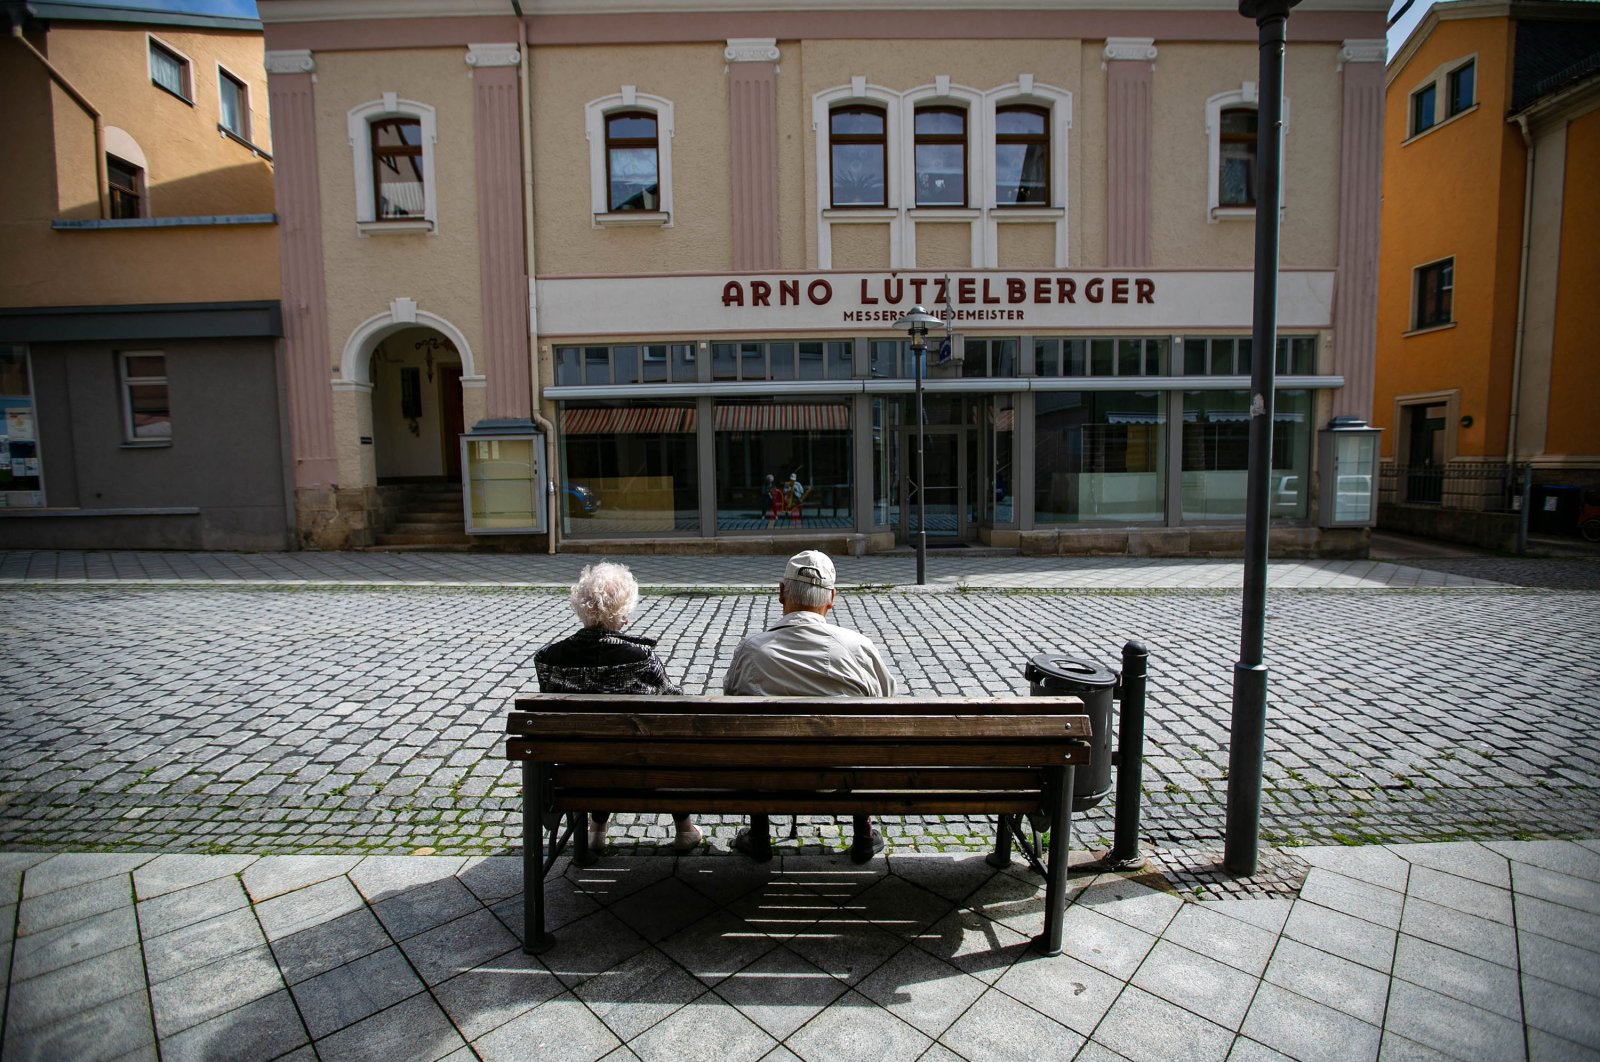 Pensioners rest on a bench in an empty street in Sonneberg, Germany, Aug. 30, 2021. (Getty Images)